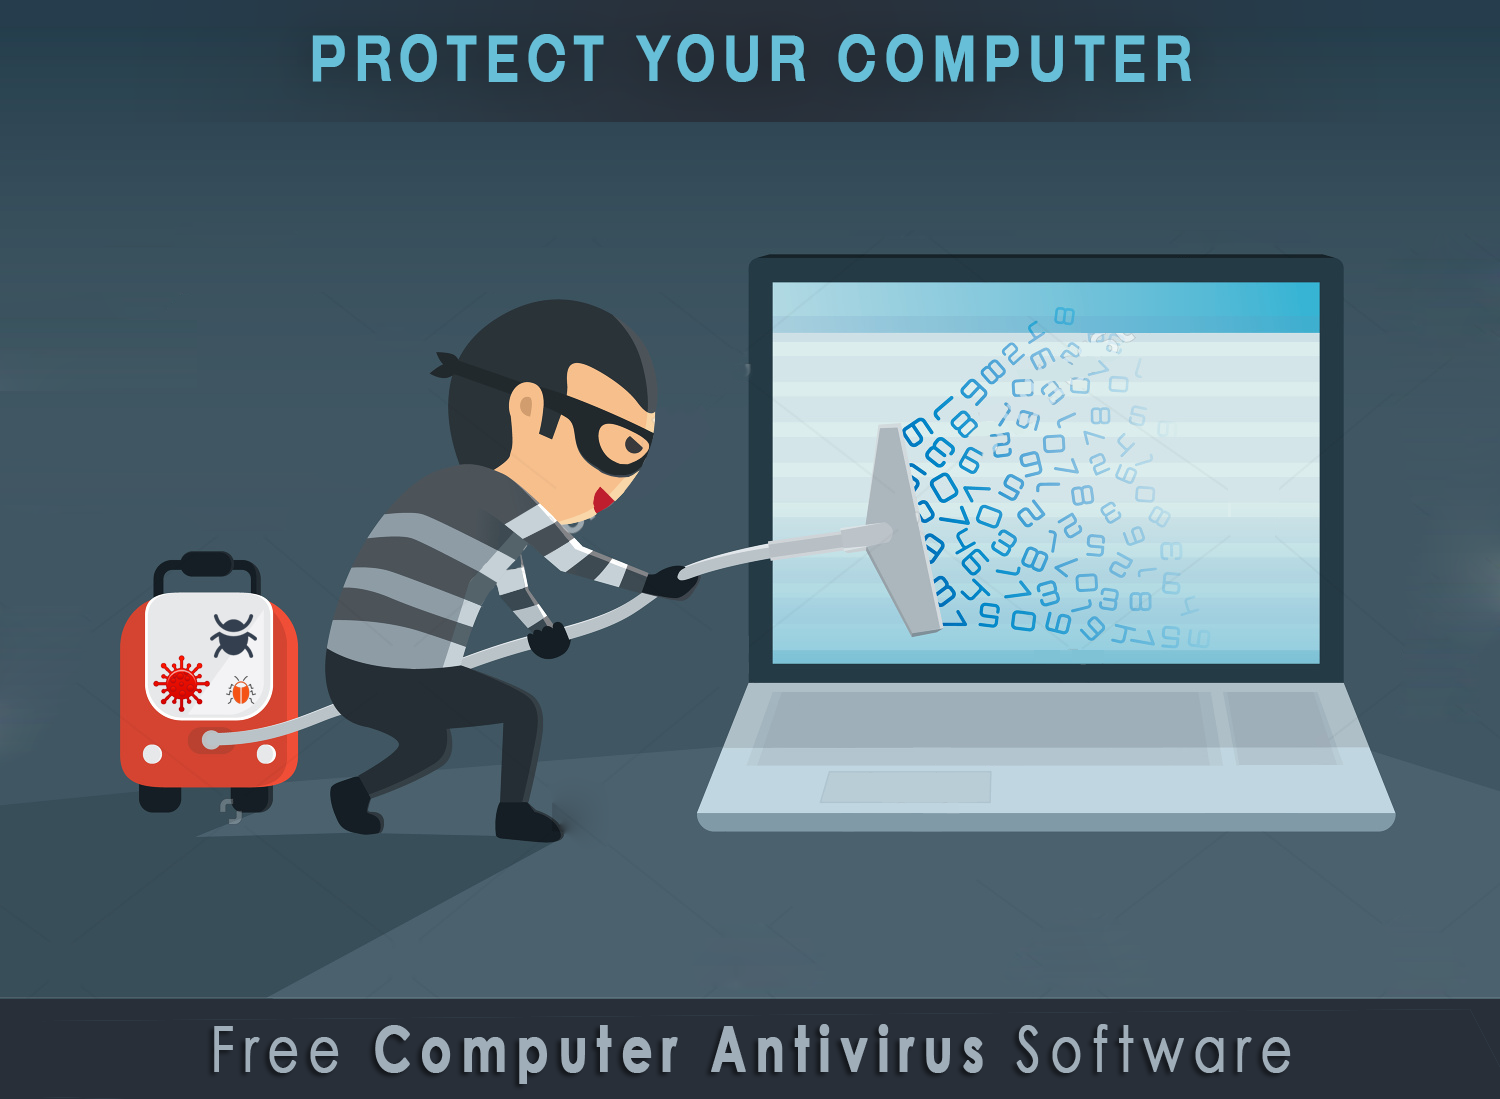 Fed up with computer viruses? Not to worry! Check it out latest Akick Software https://goo.gl/hGtVBO Inc, a leading and globally trusted company serving in the field of Best Computer Antivirus security software application since 1999. The lightest and best-rated software to make your PC happier and secure.